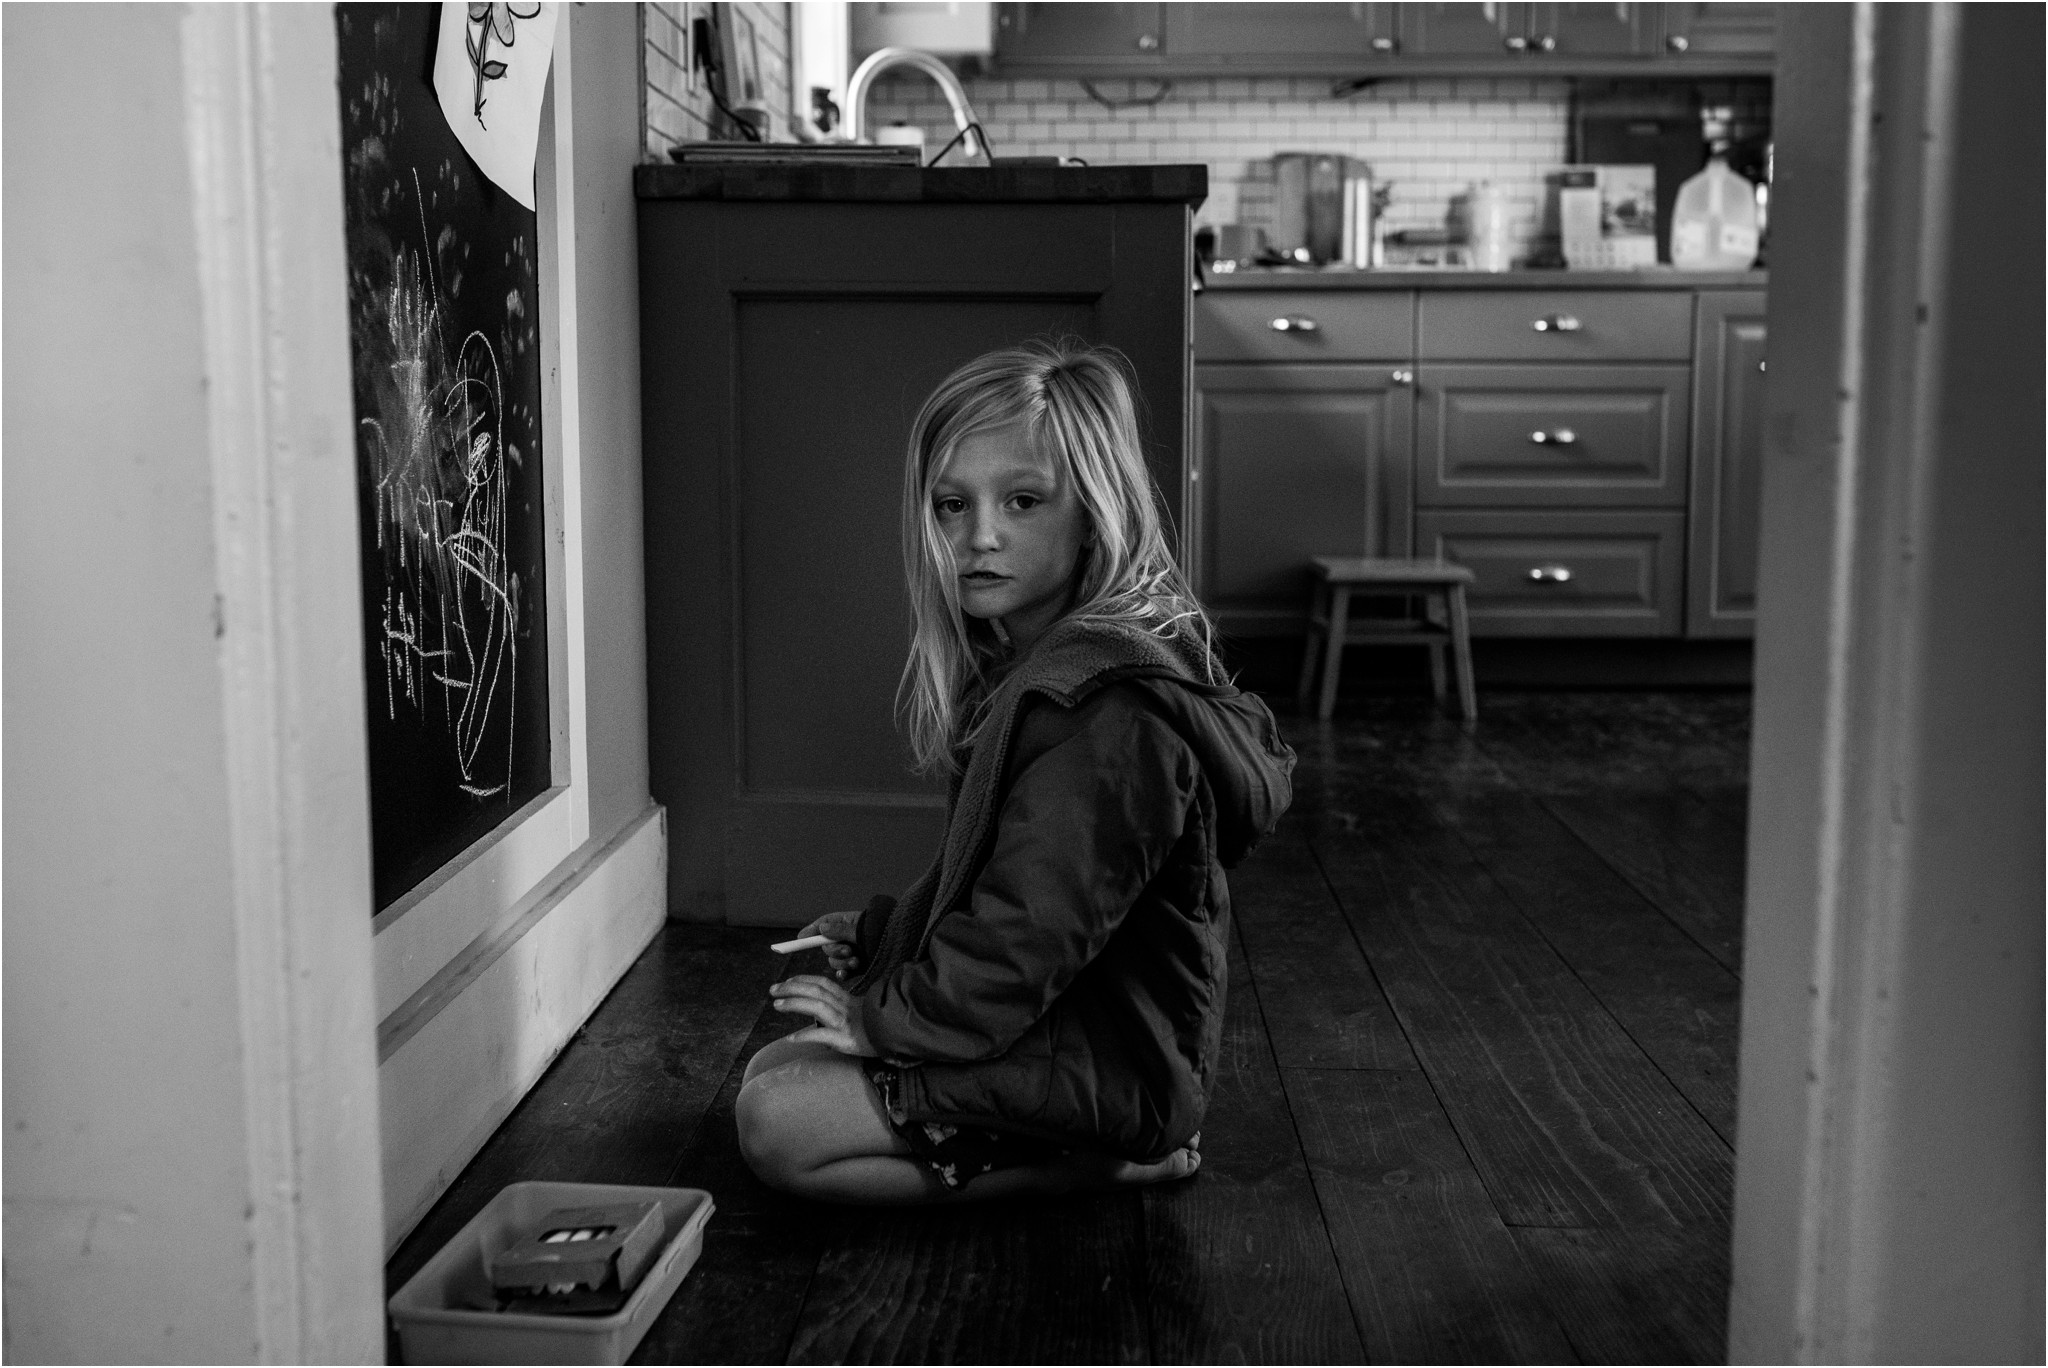 Girl kneeling on the kitchen floor